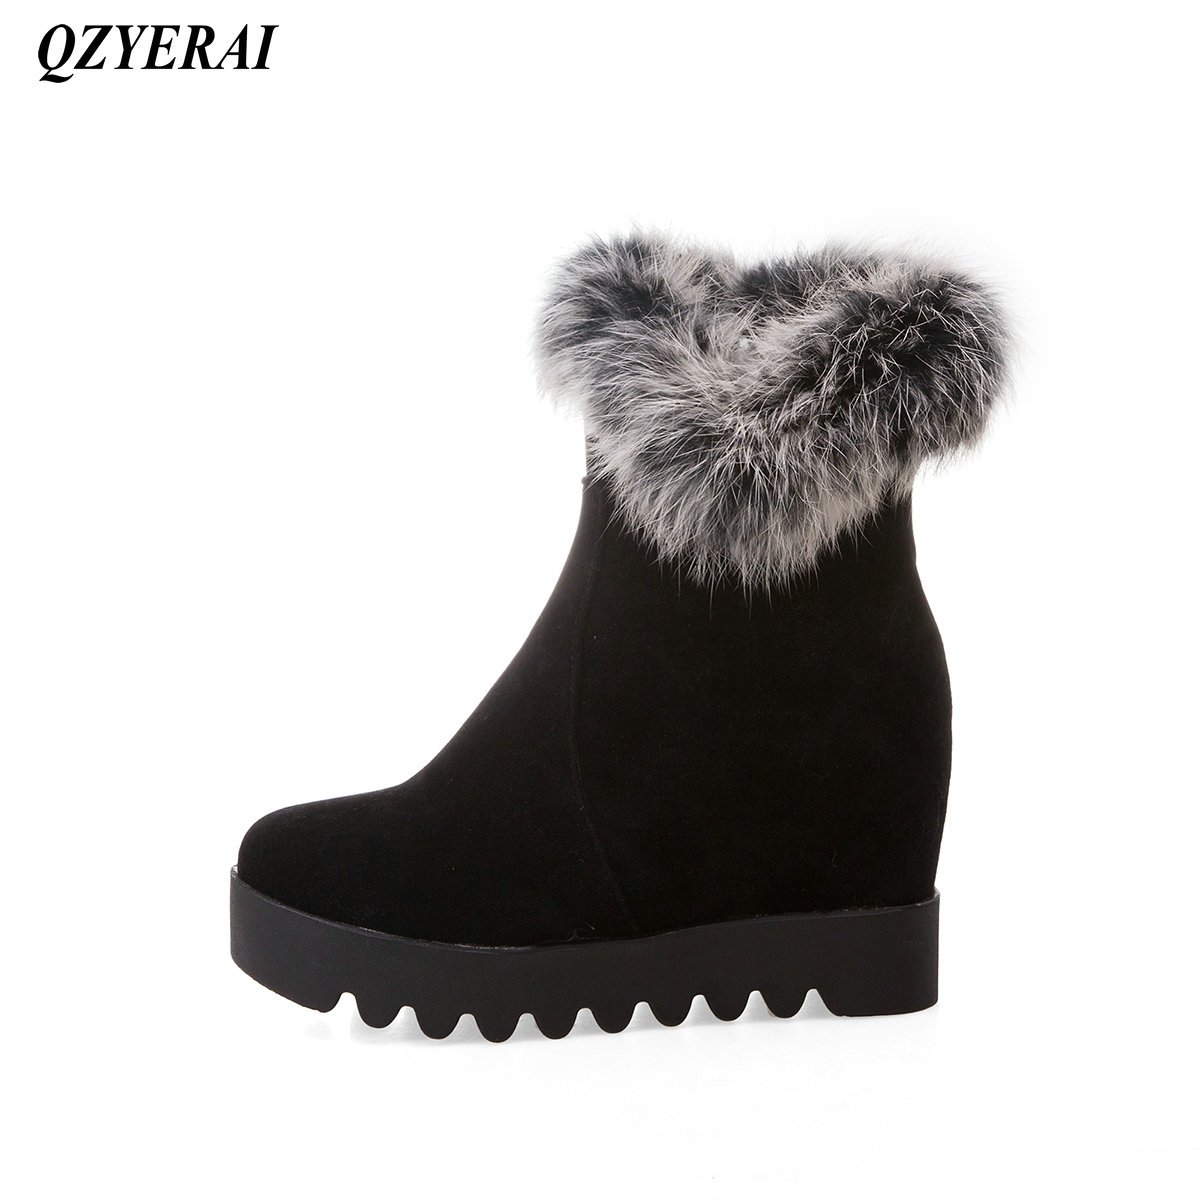 QZYERAI Winter rabbit hair thick soles womens boots inner height zippers womens shoes fashion womens boots in Ankle Boots from Shoes